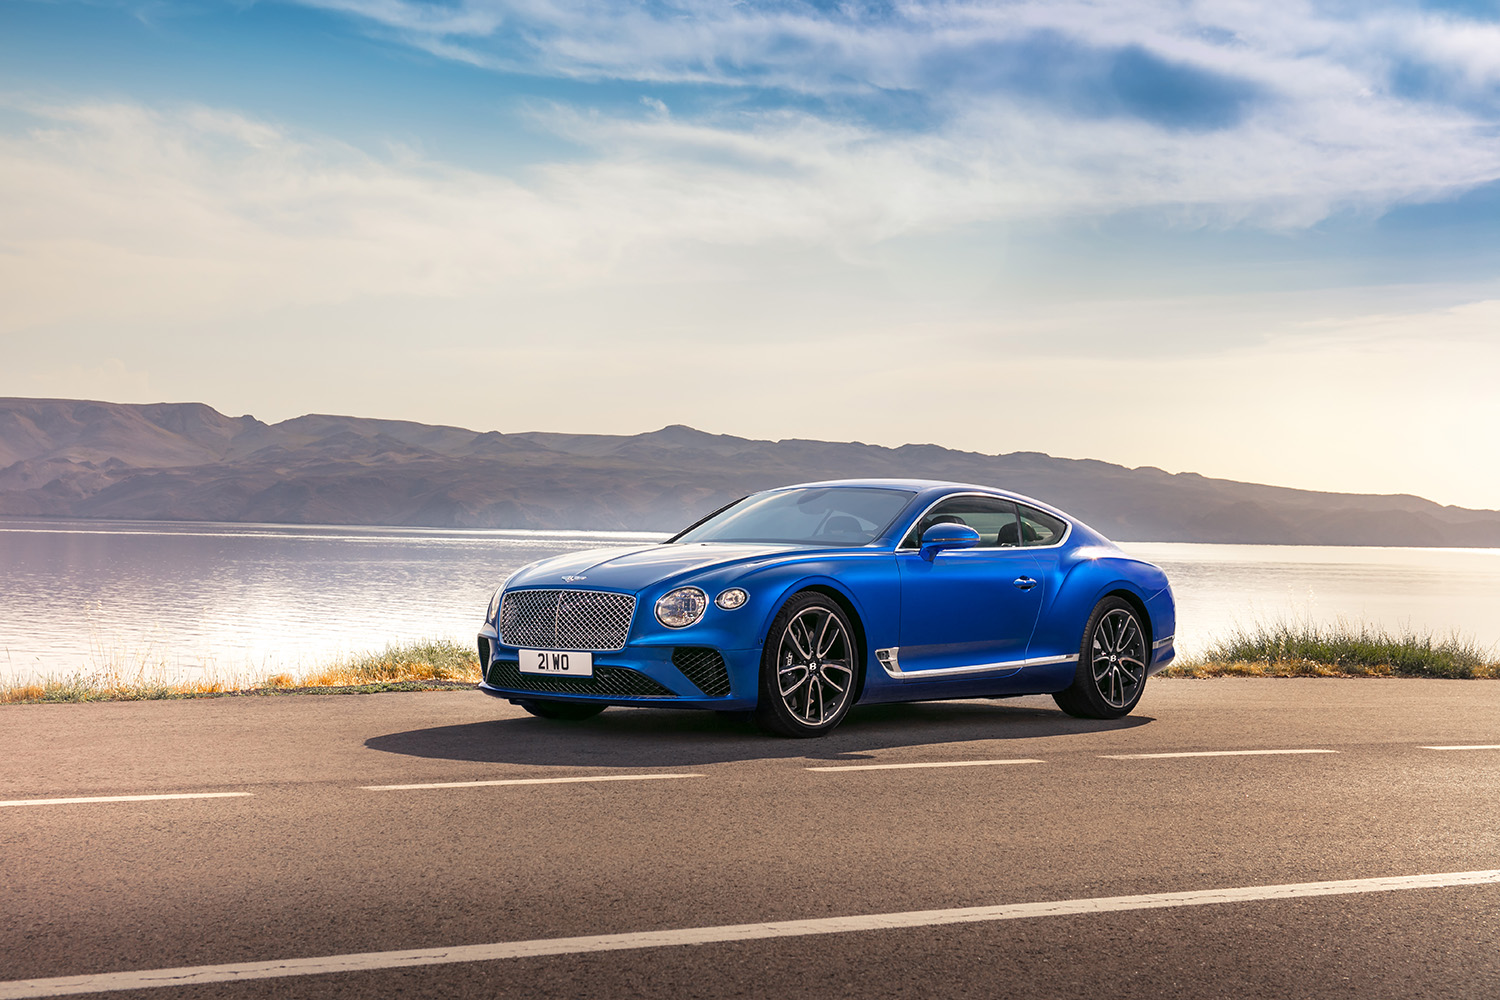 Bentley's new Continental GT is the quintessential British grand tourer